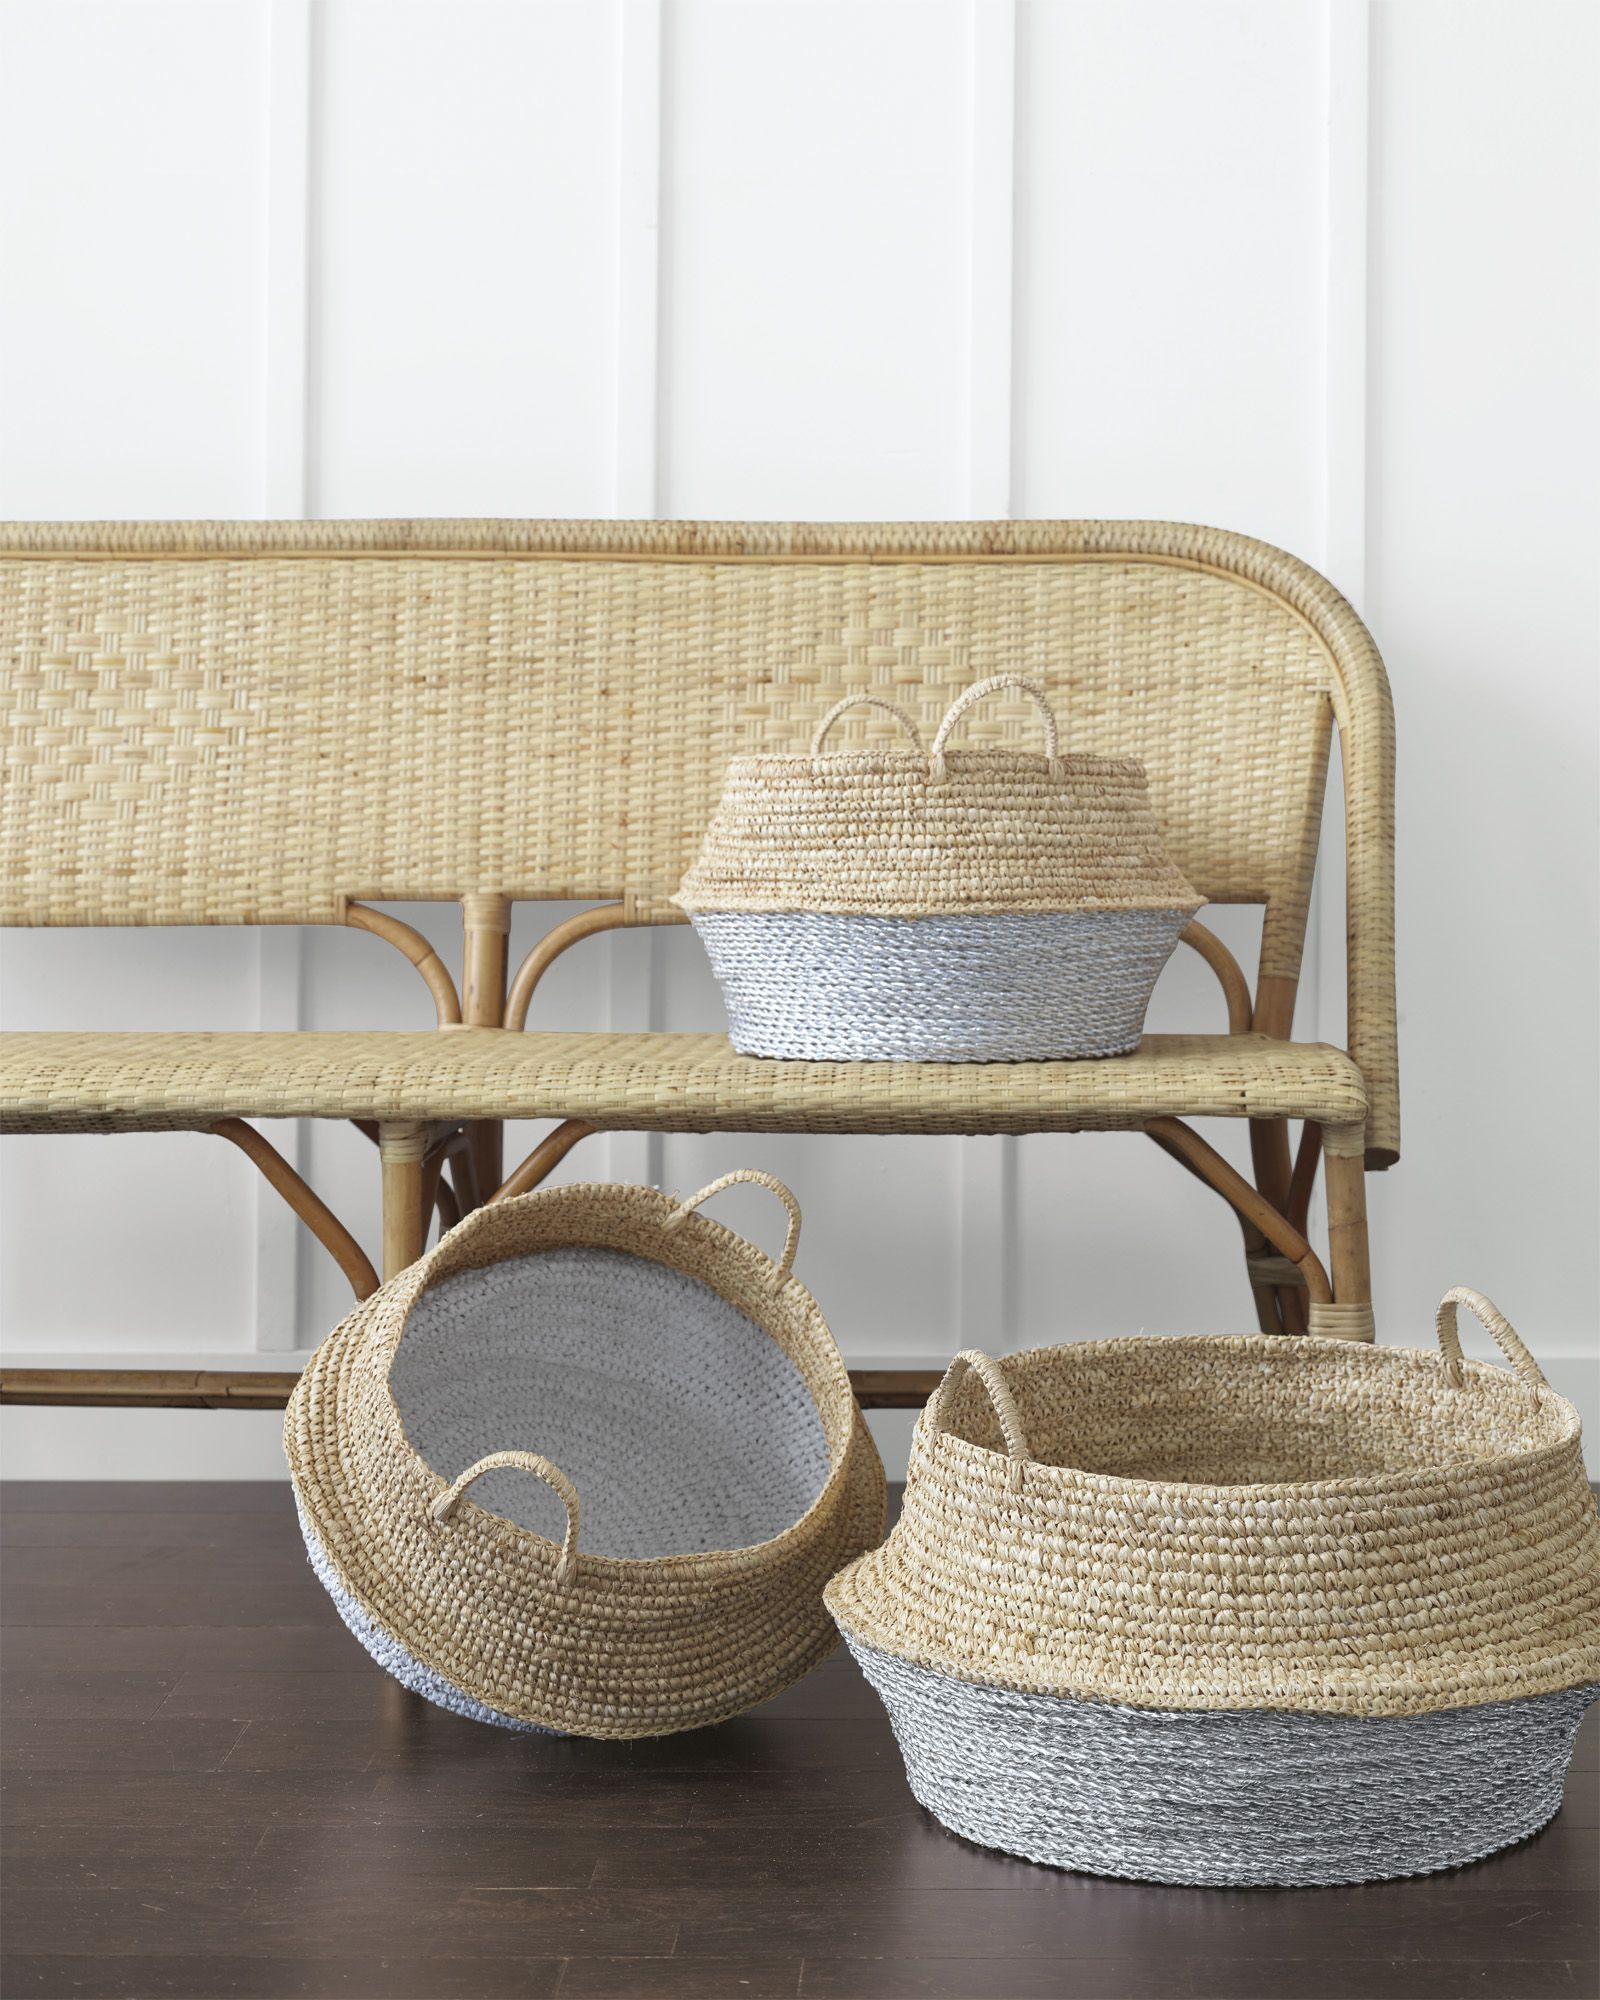 Riviera Bench in Natural and Round Belly Baskets via